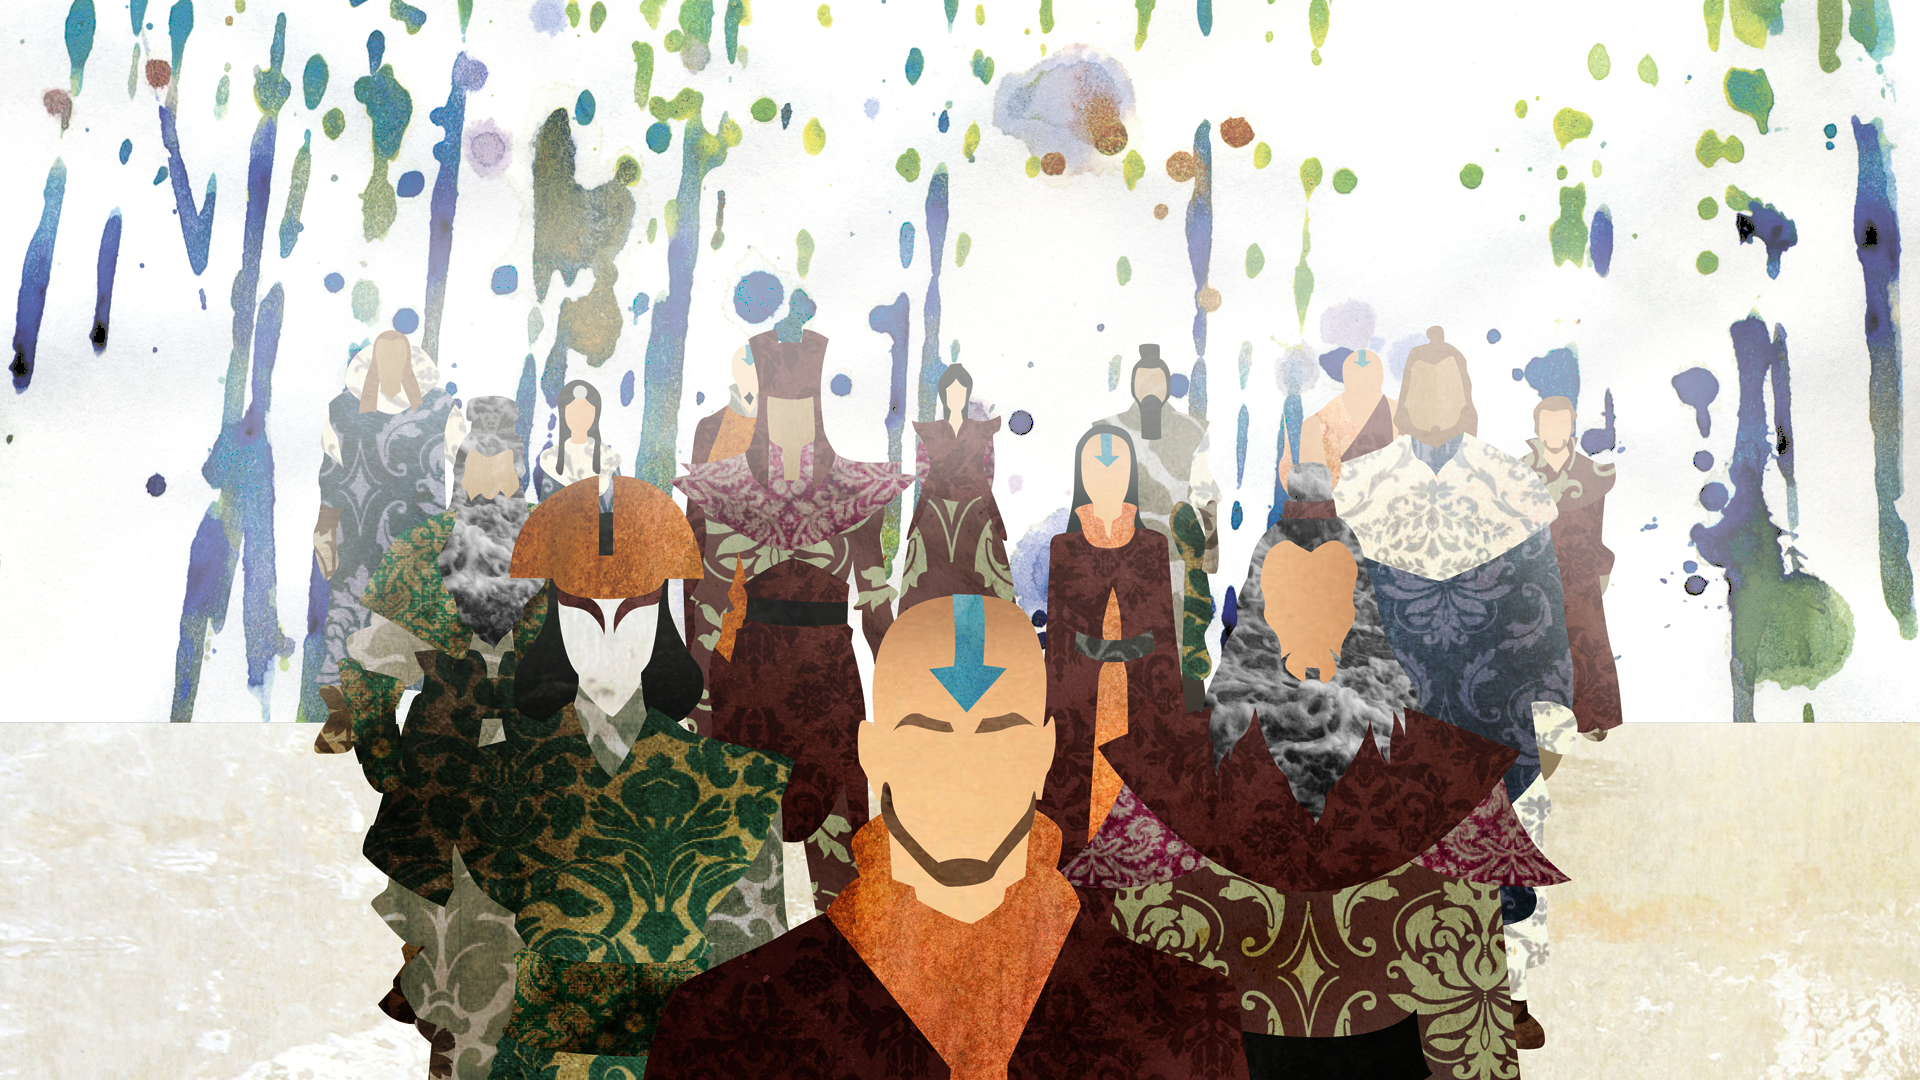 71 Avatar The Last Airbender Backgrounds On Wallpapersafari